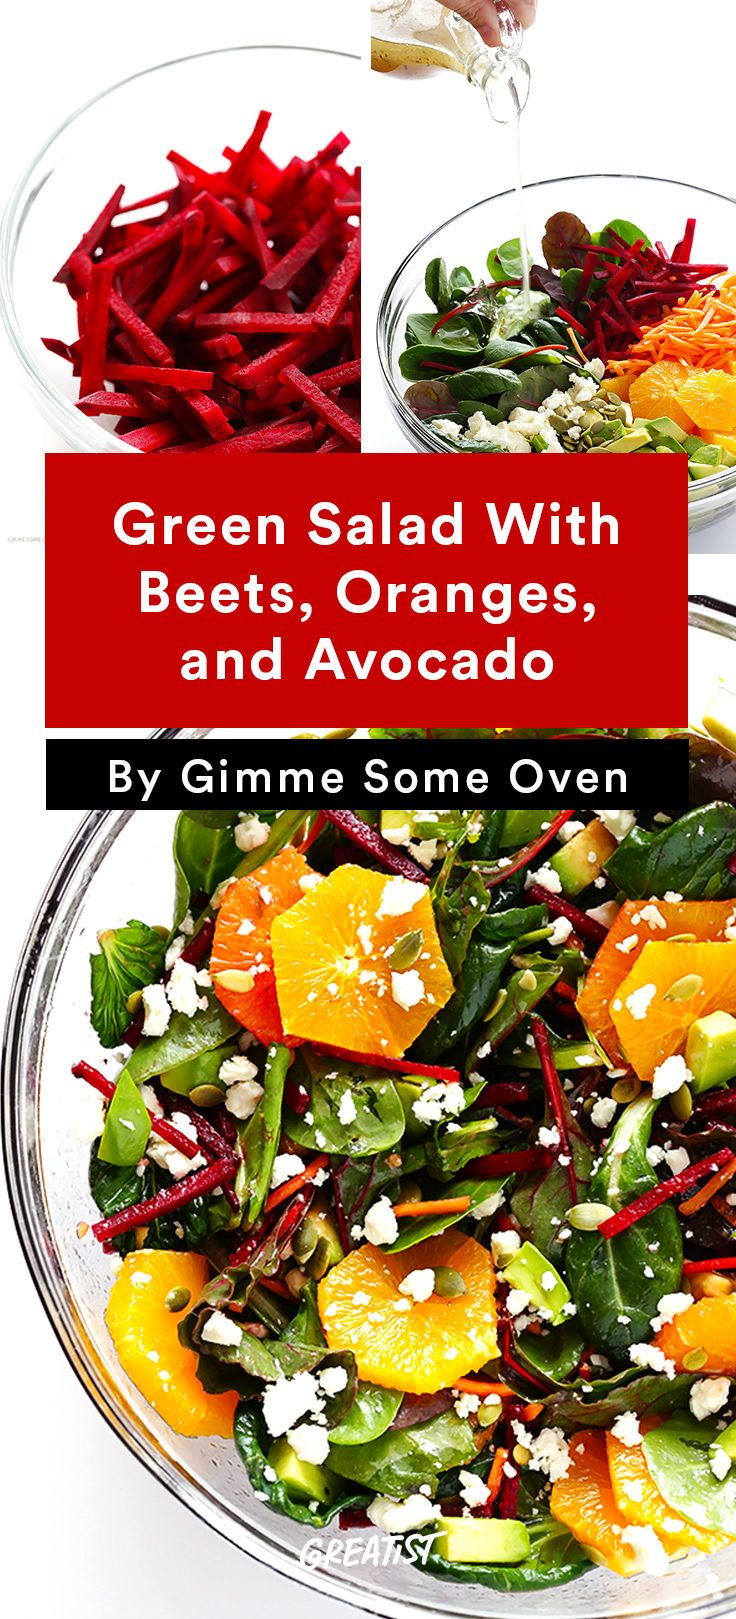 Green Salad With Beets, Oranges, and Avocado